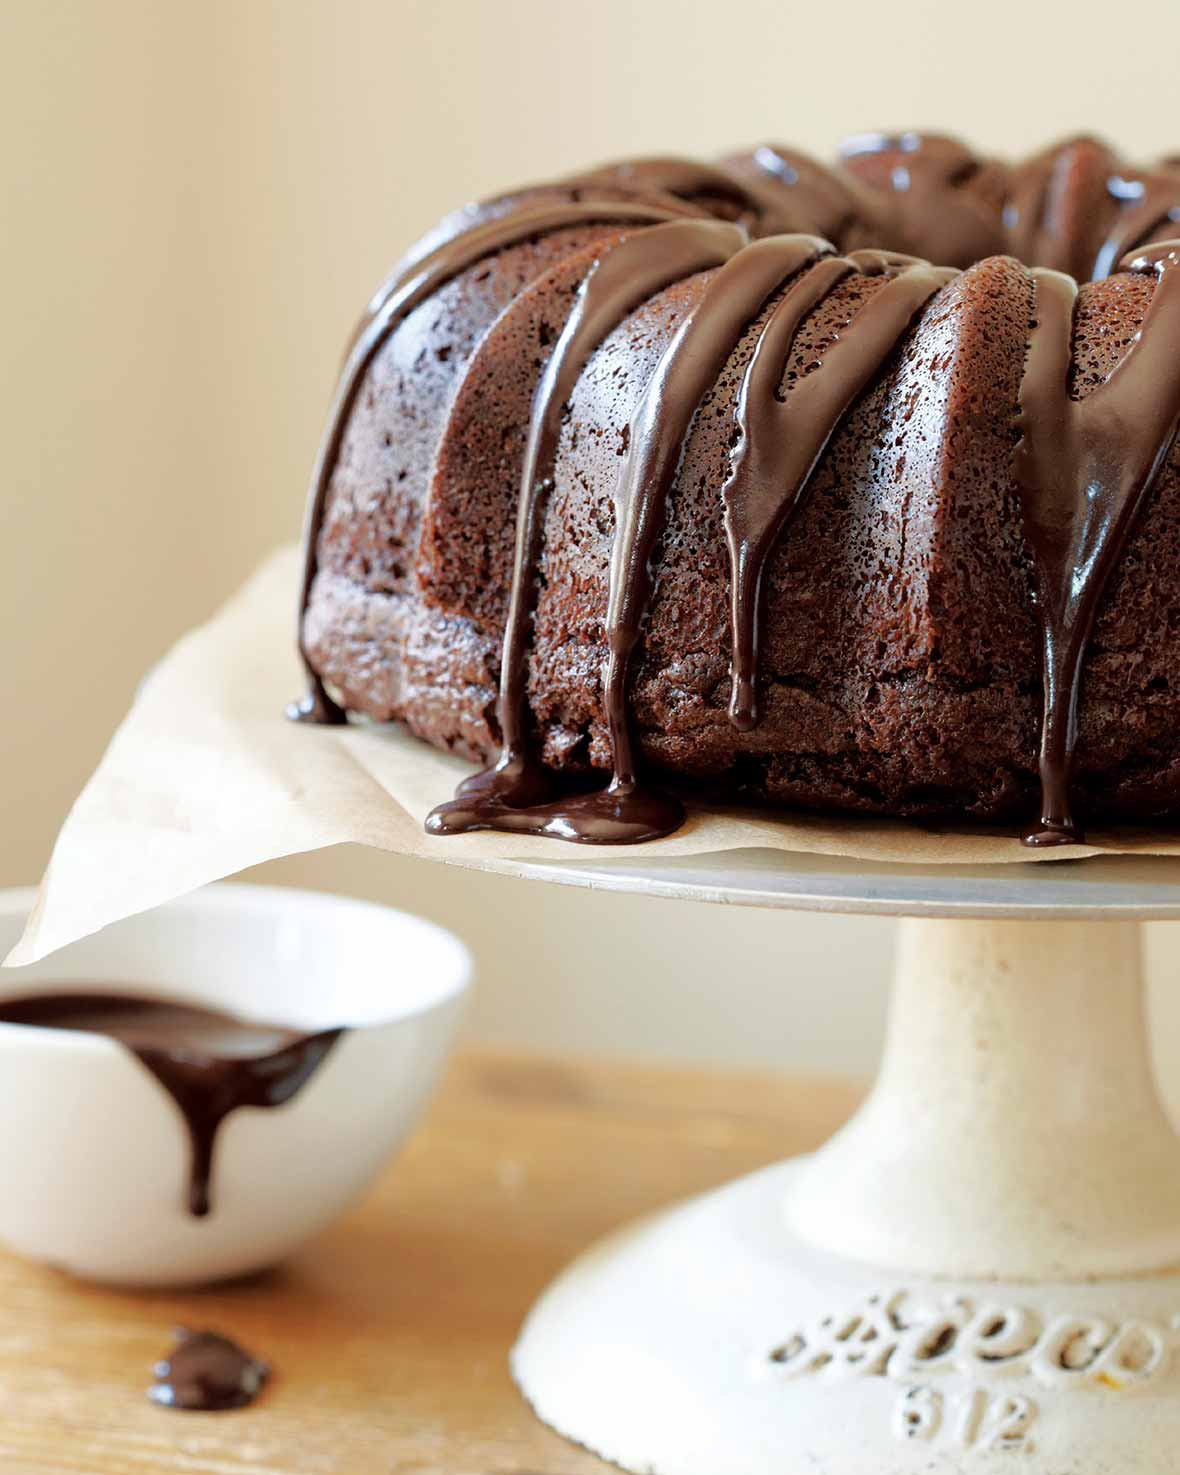 A chocolate glazed chocolate bundt cake sitting atop a white cake stand with a dish of glaze on the side